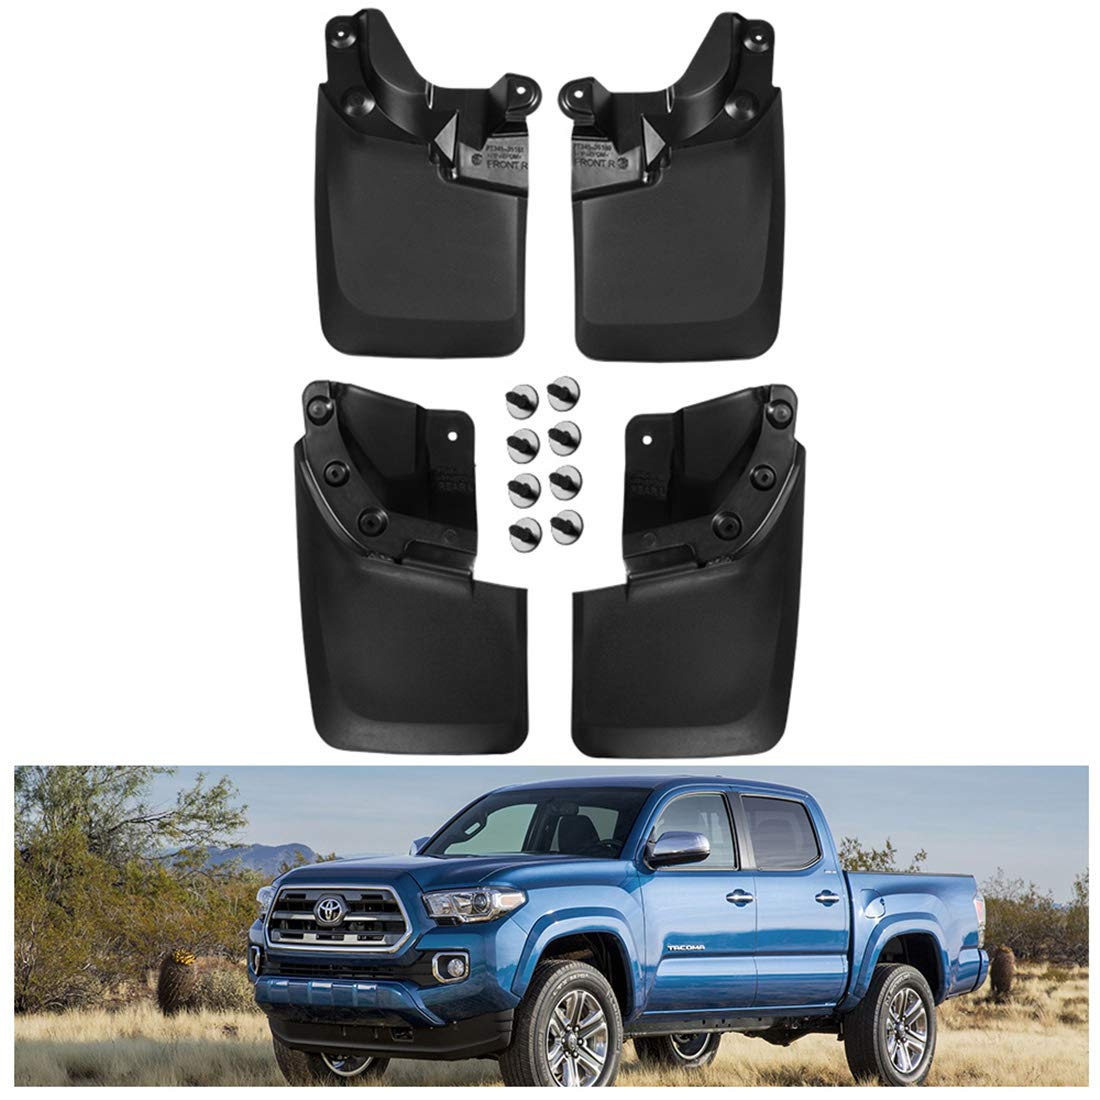 KIWI MASTER Mud Guards Compatible for Toyota Tacoma 2016-2018,4 Pcs Set Front and Rear Flaps Splash Guards (with OEM Fender Flares ONLY),Black